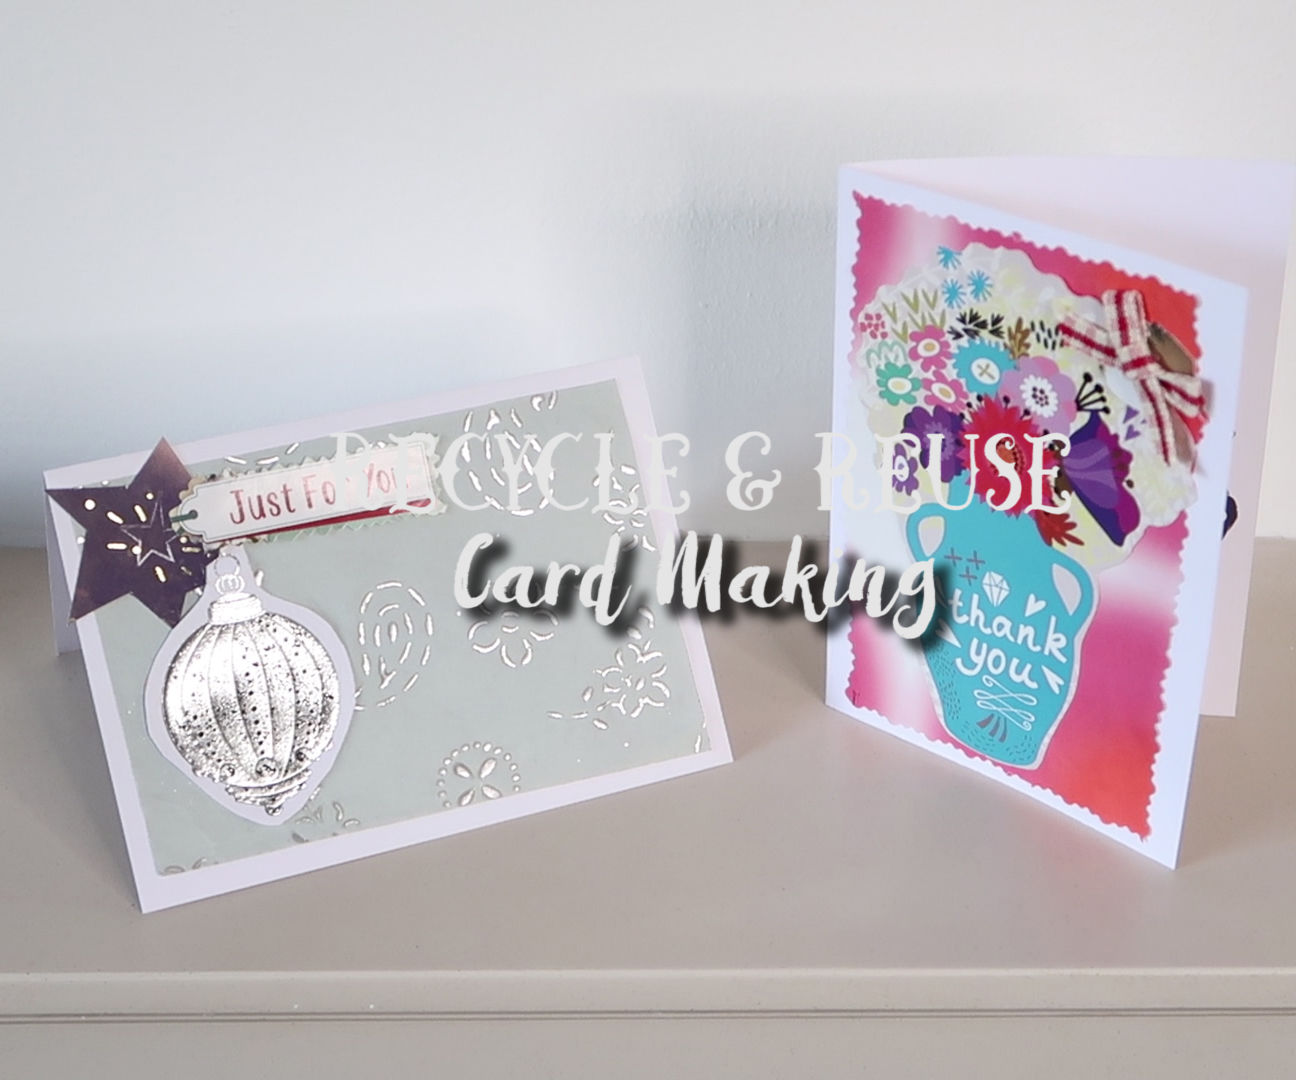 Recycle & Reuse Card Making